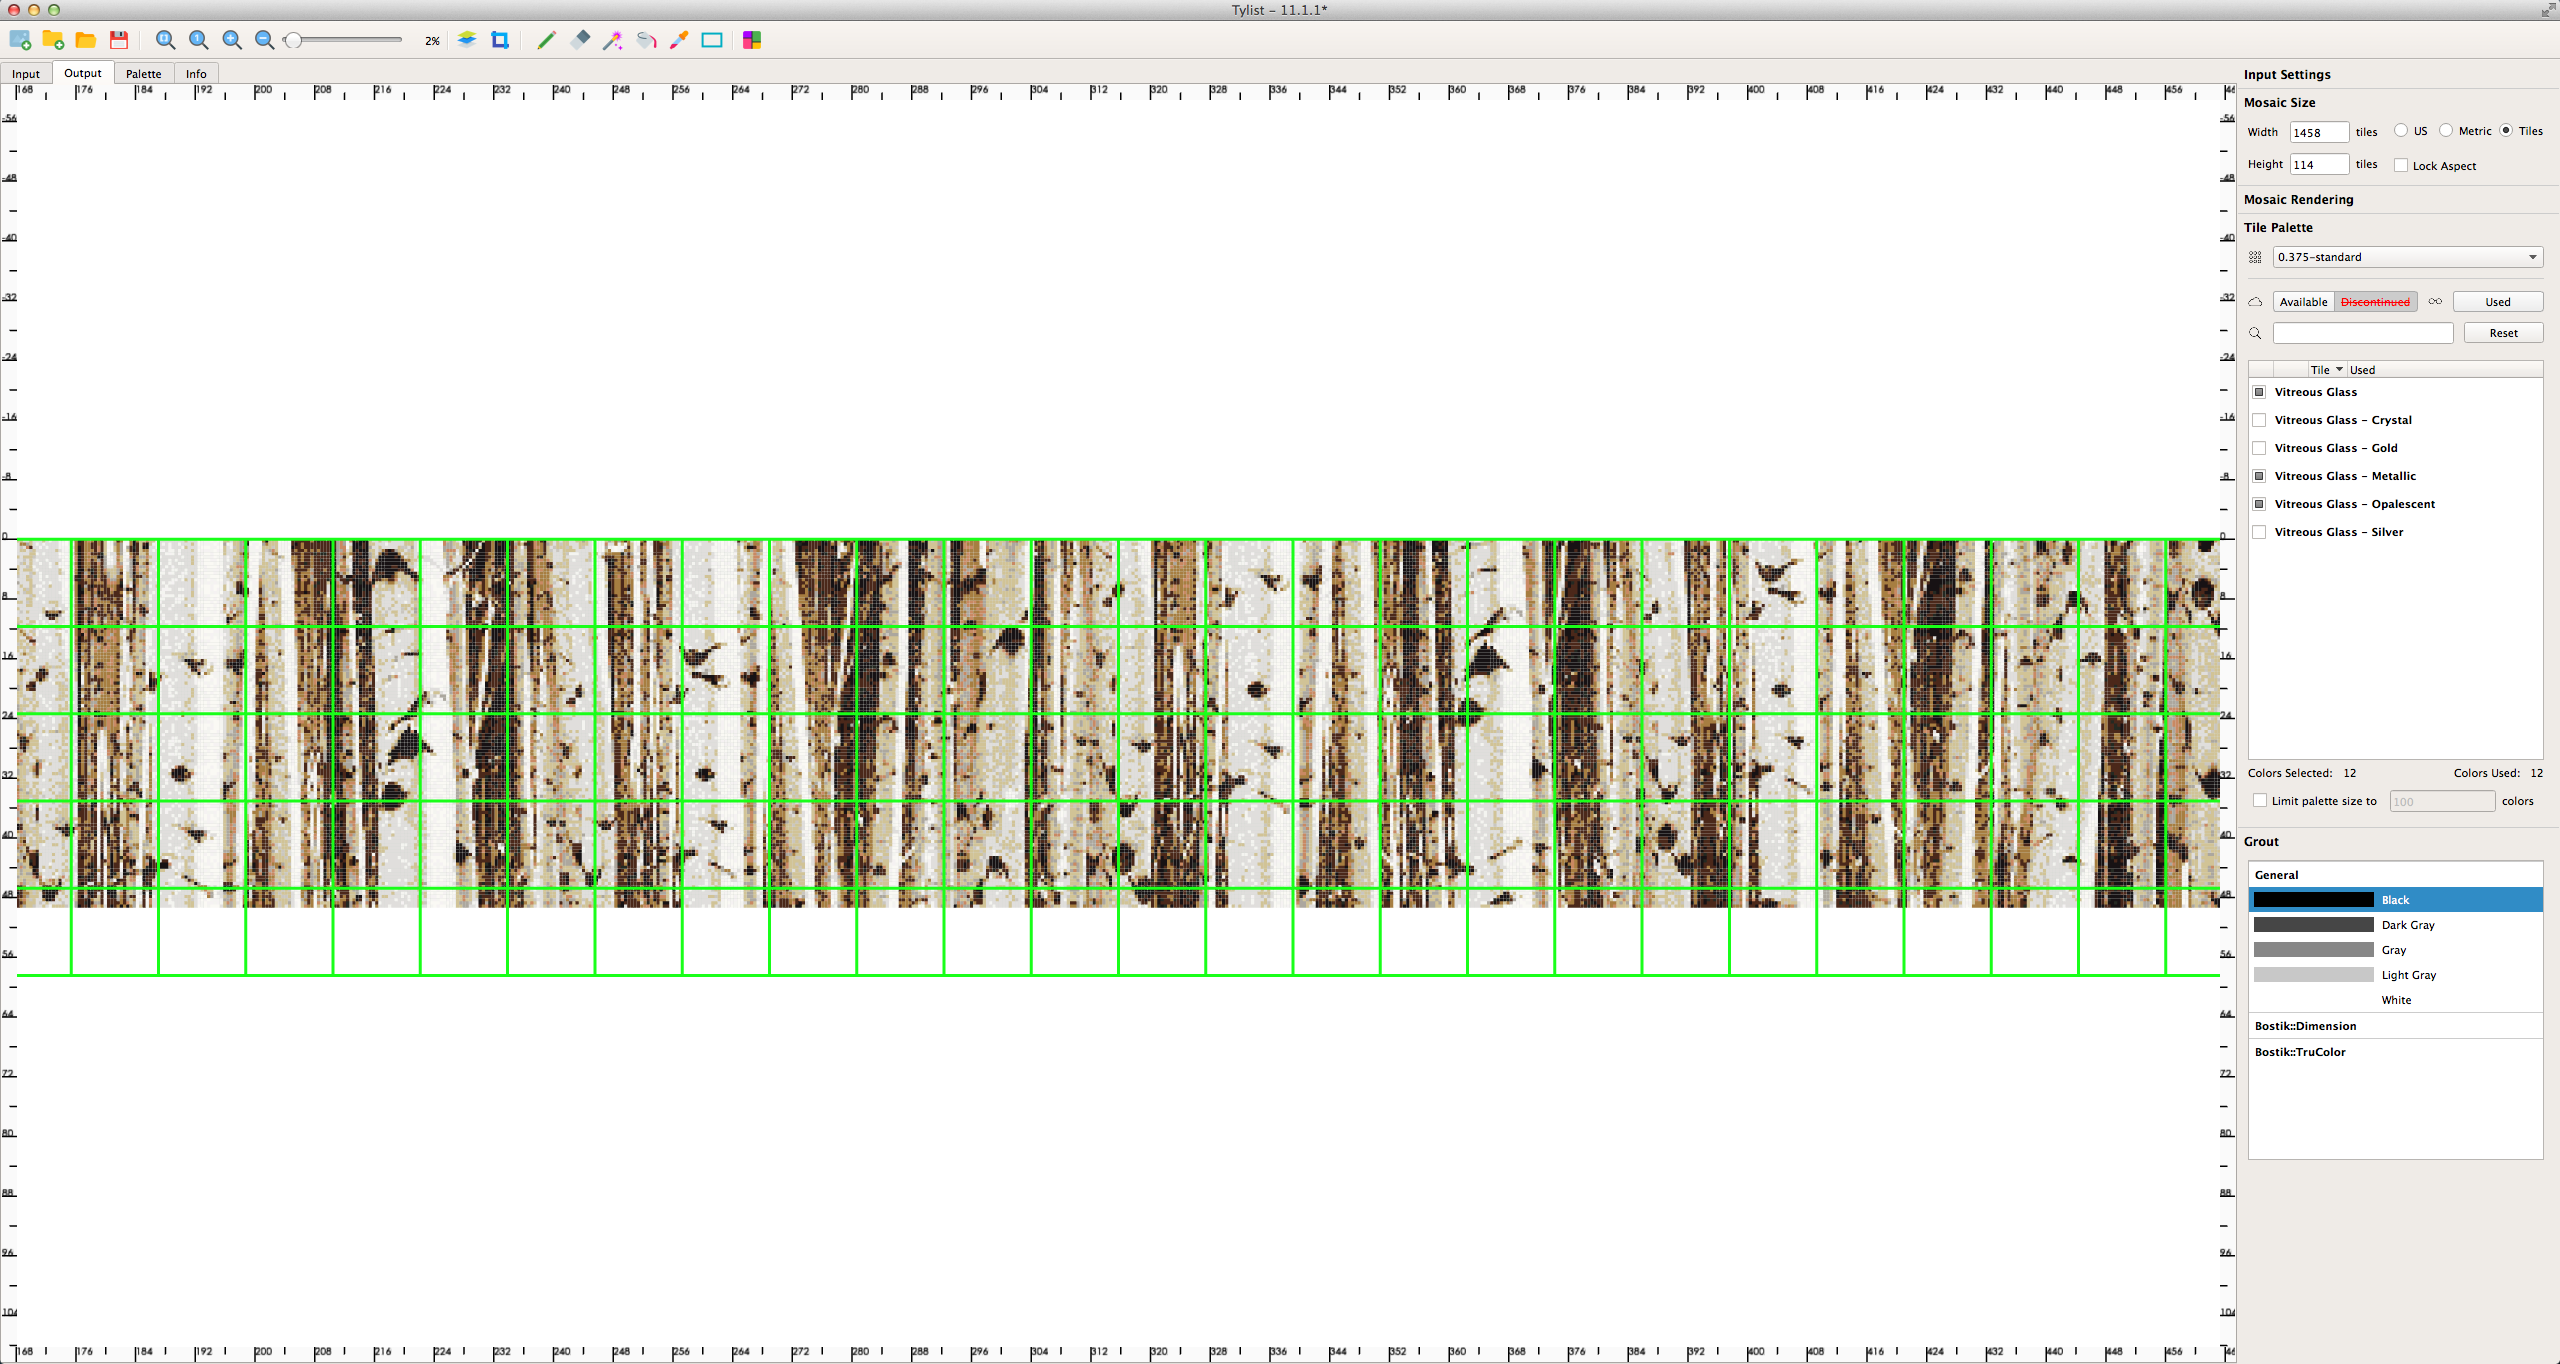 01161076 Cliff Lodge ballroom Aspen Naturally Refine Mosaic birch trees tylist screen shot